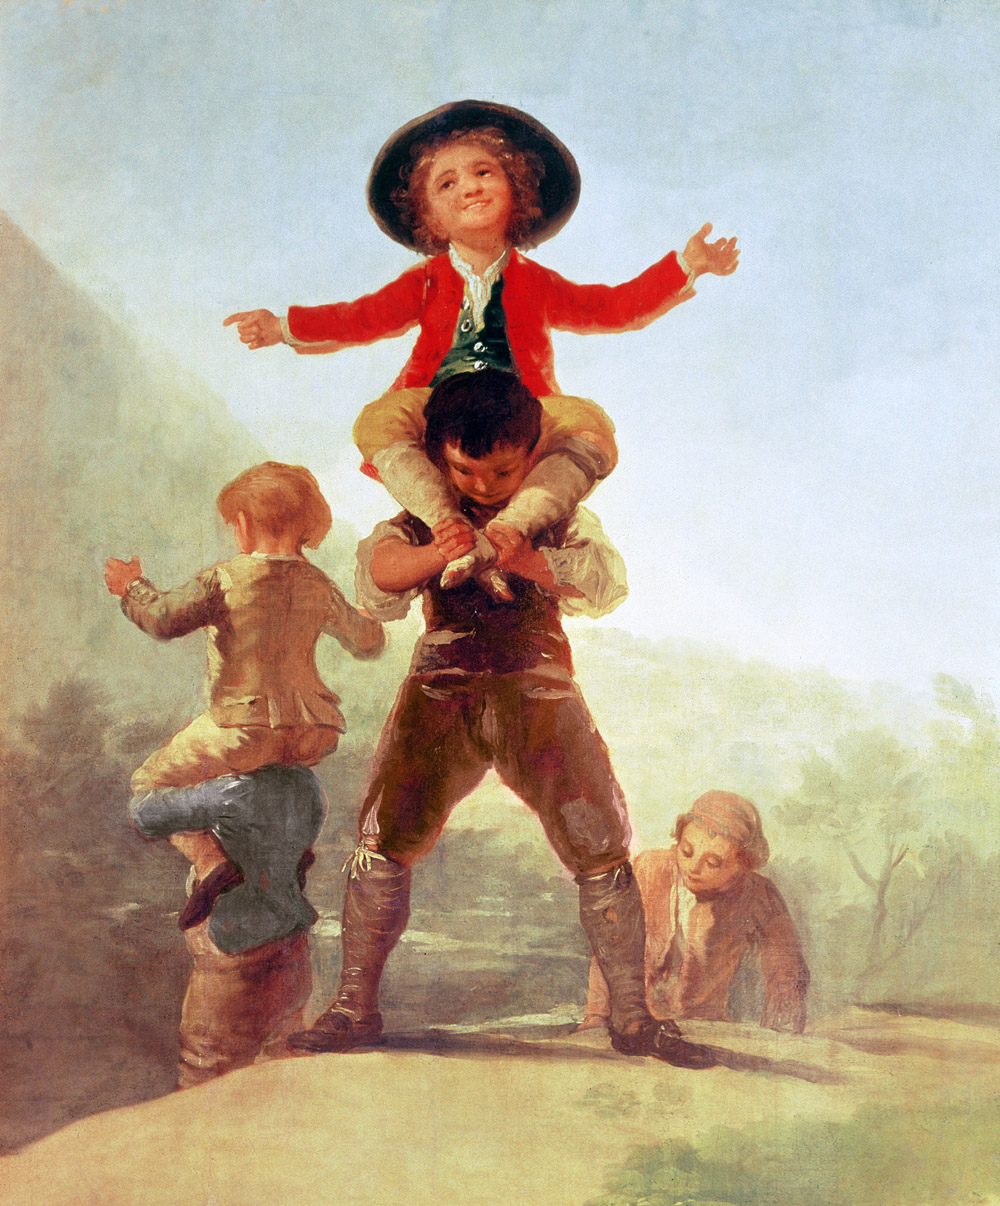 Goya painting showing one child riding on another's shoulders.